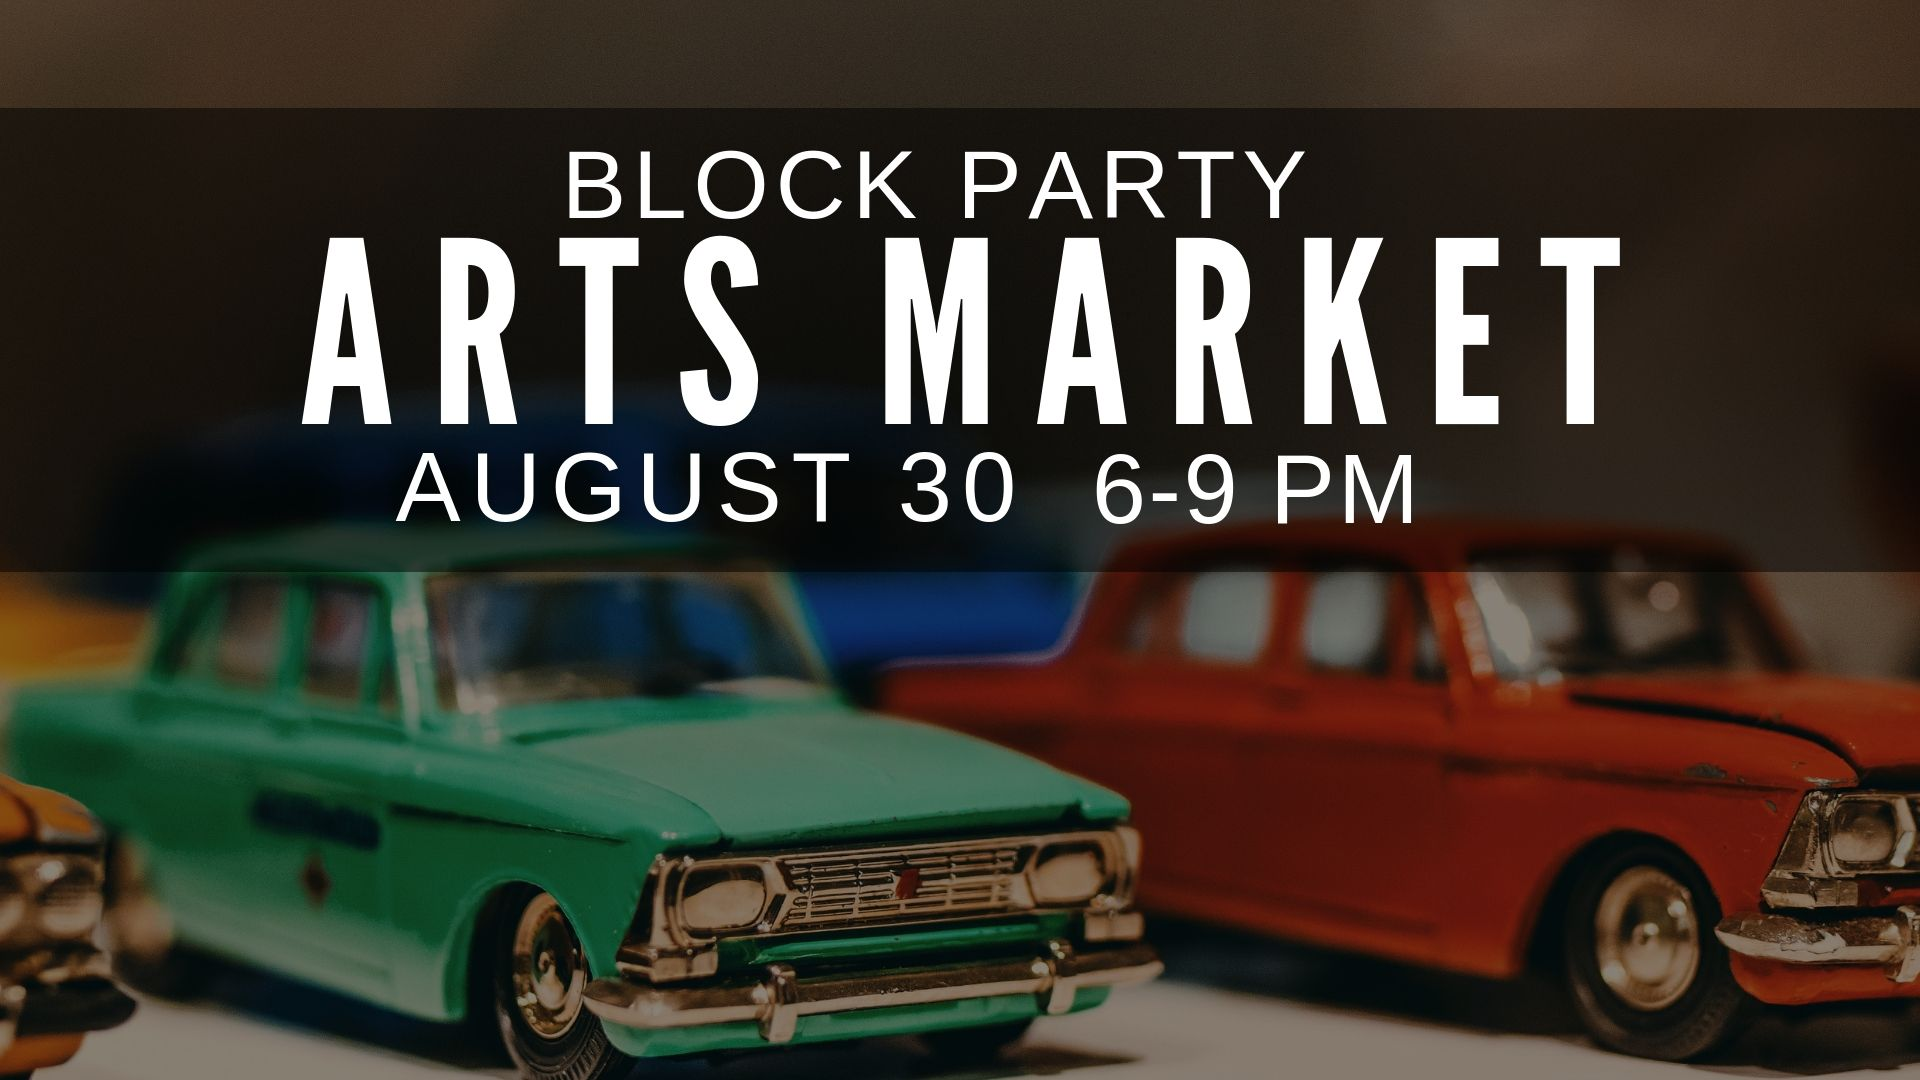 august-block-party-art-market.jpg